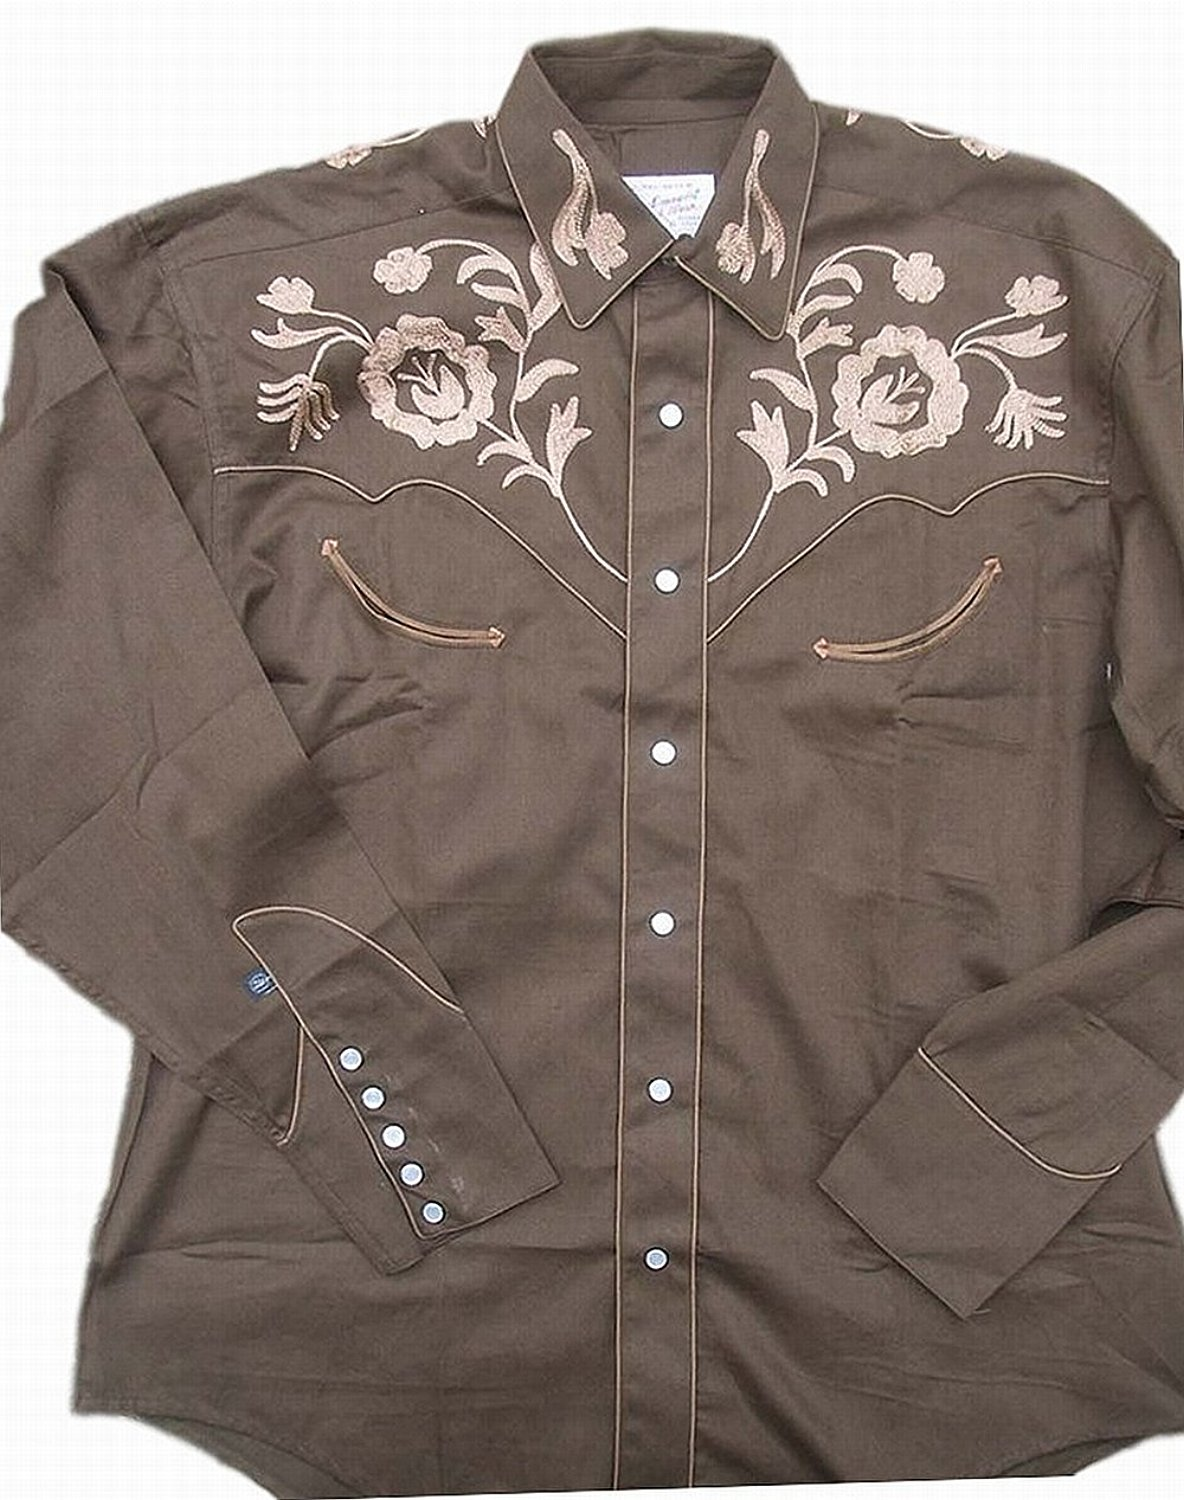 ab99c804 Get Quotations · Rockmount Mens Vintage Style Western Floral Embroidery  Snap Shirt